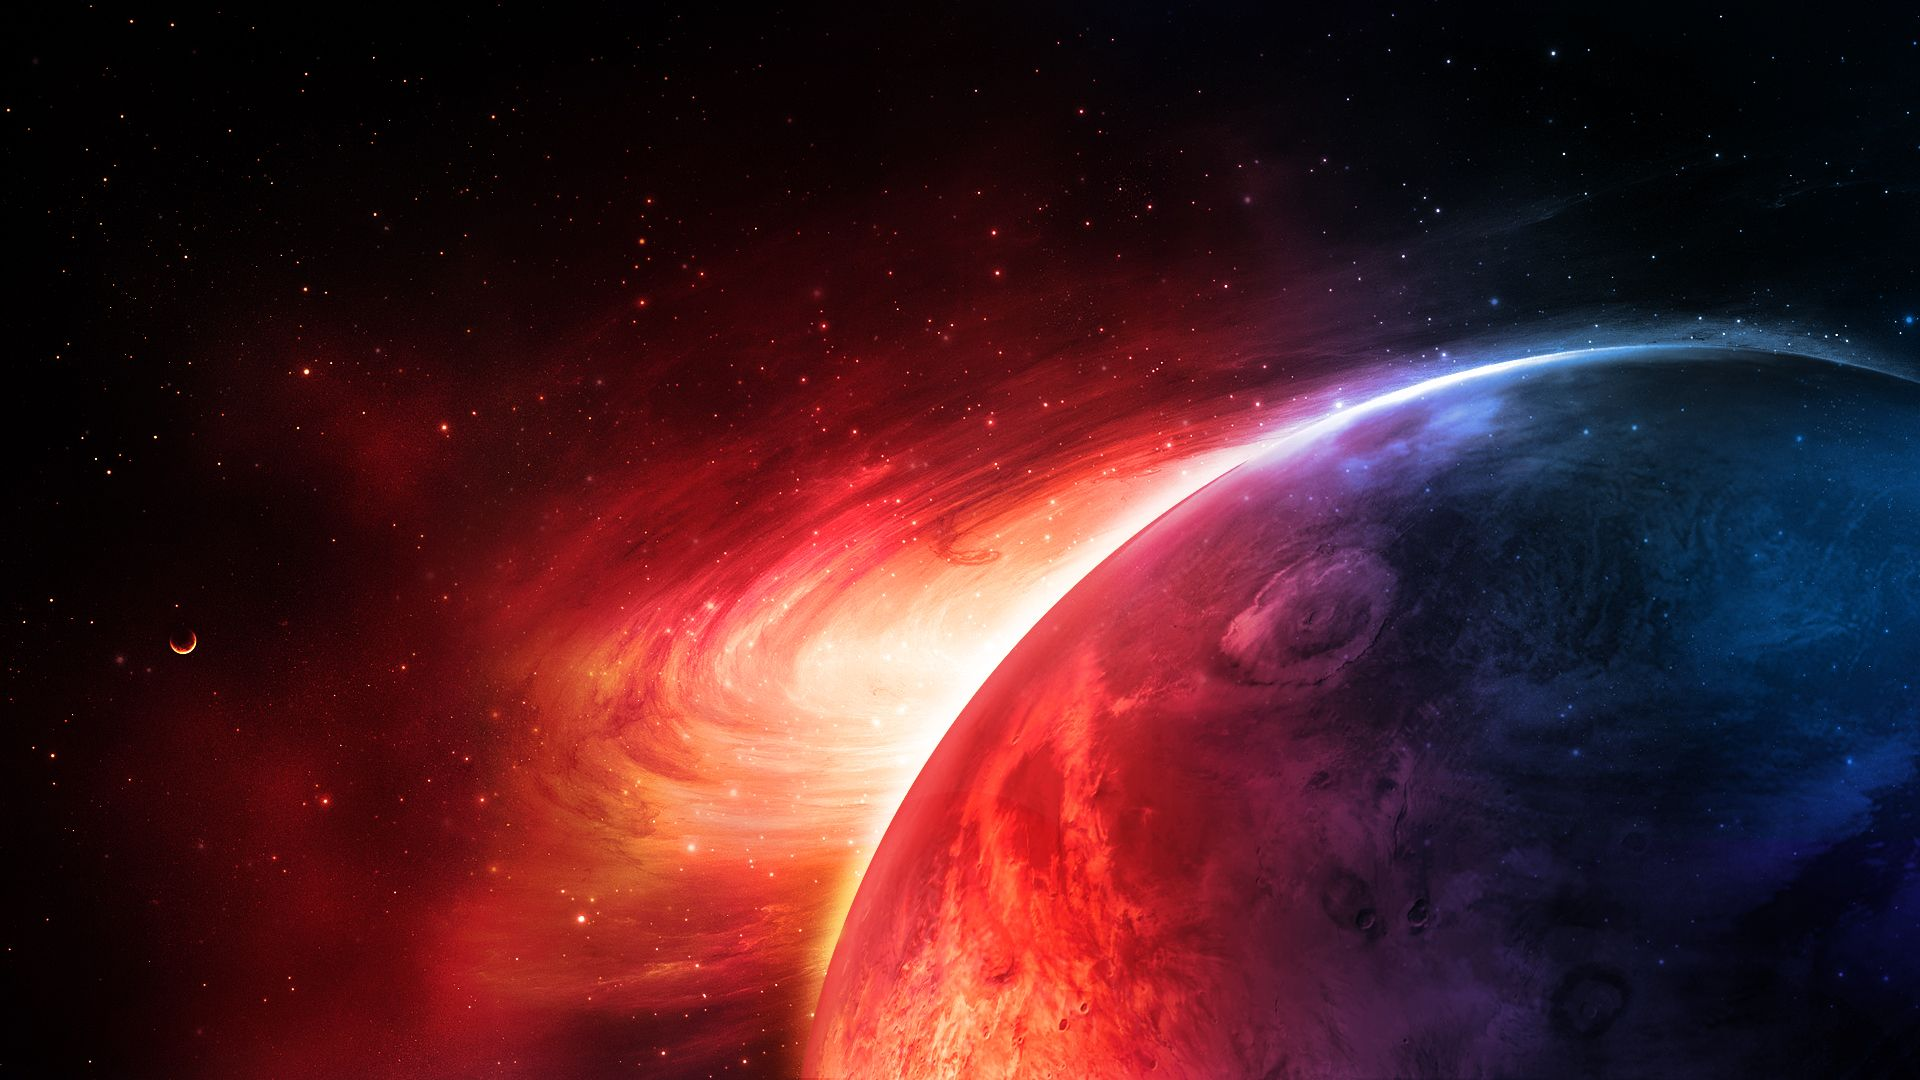 Sci Fi Red Wallpapers - Top Free Sci Fi Red Backgrounds ...